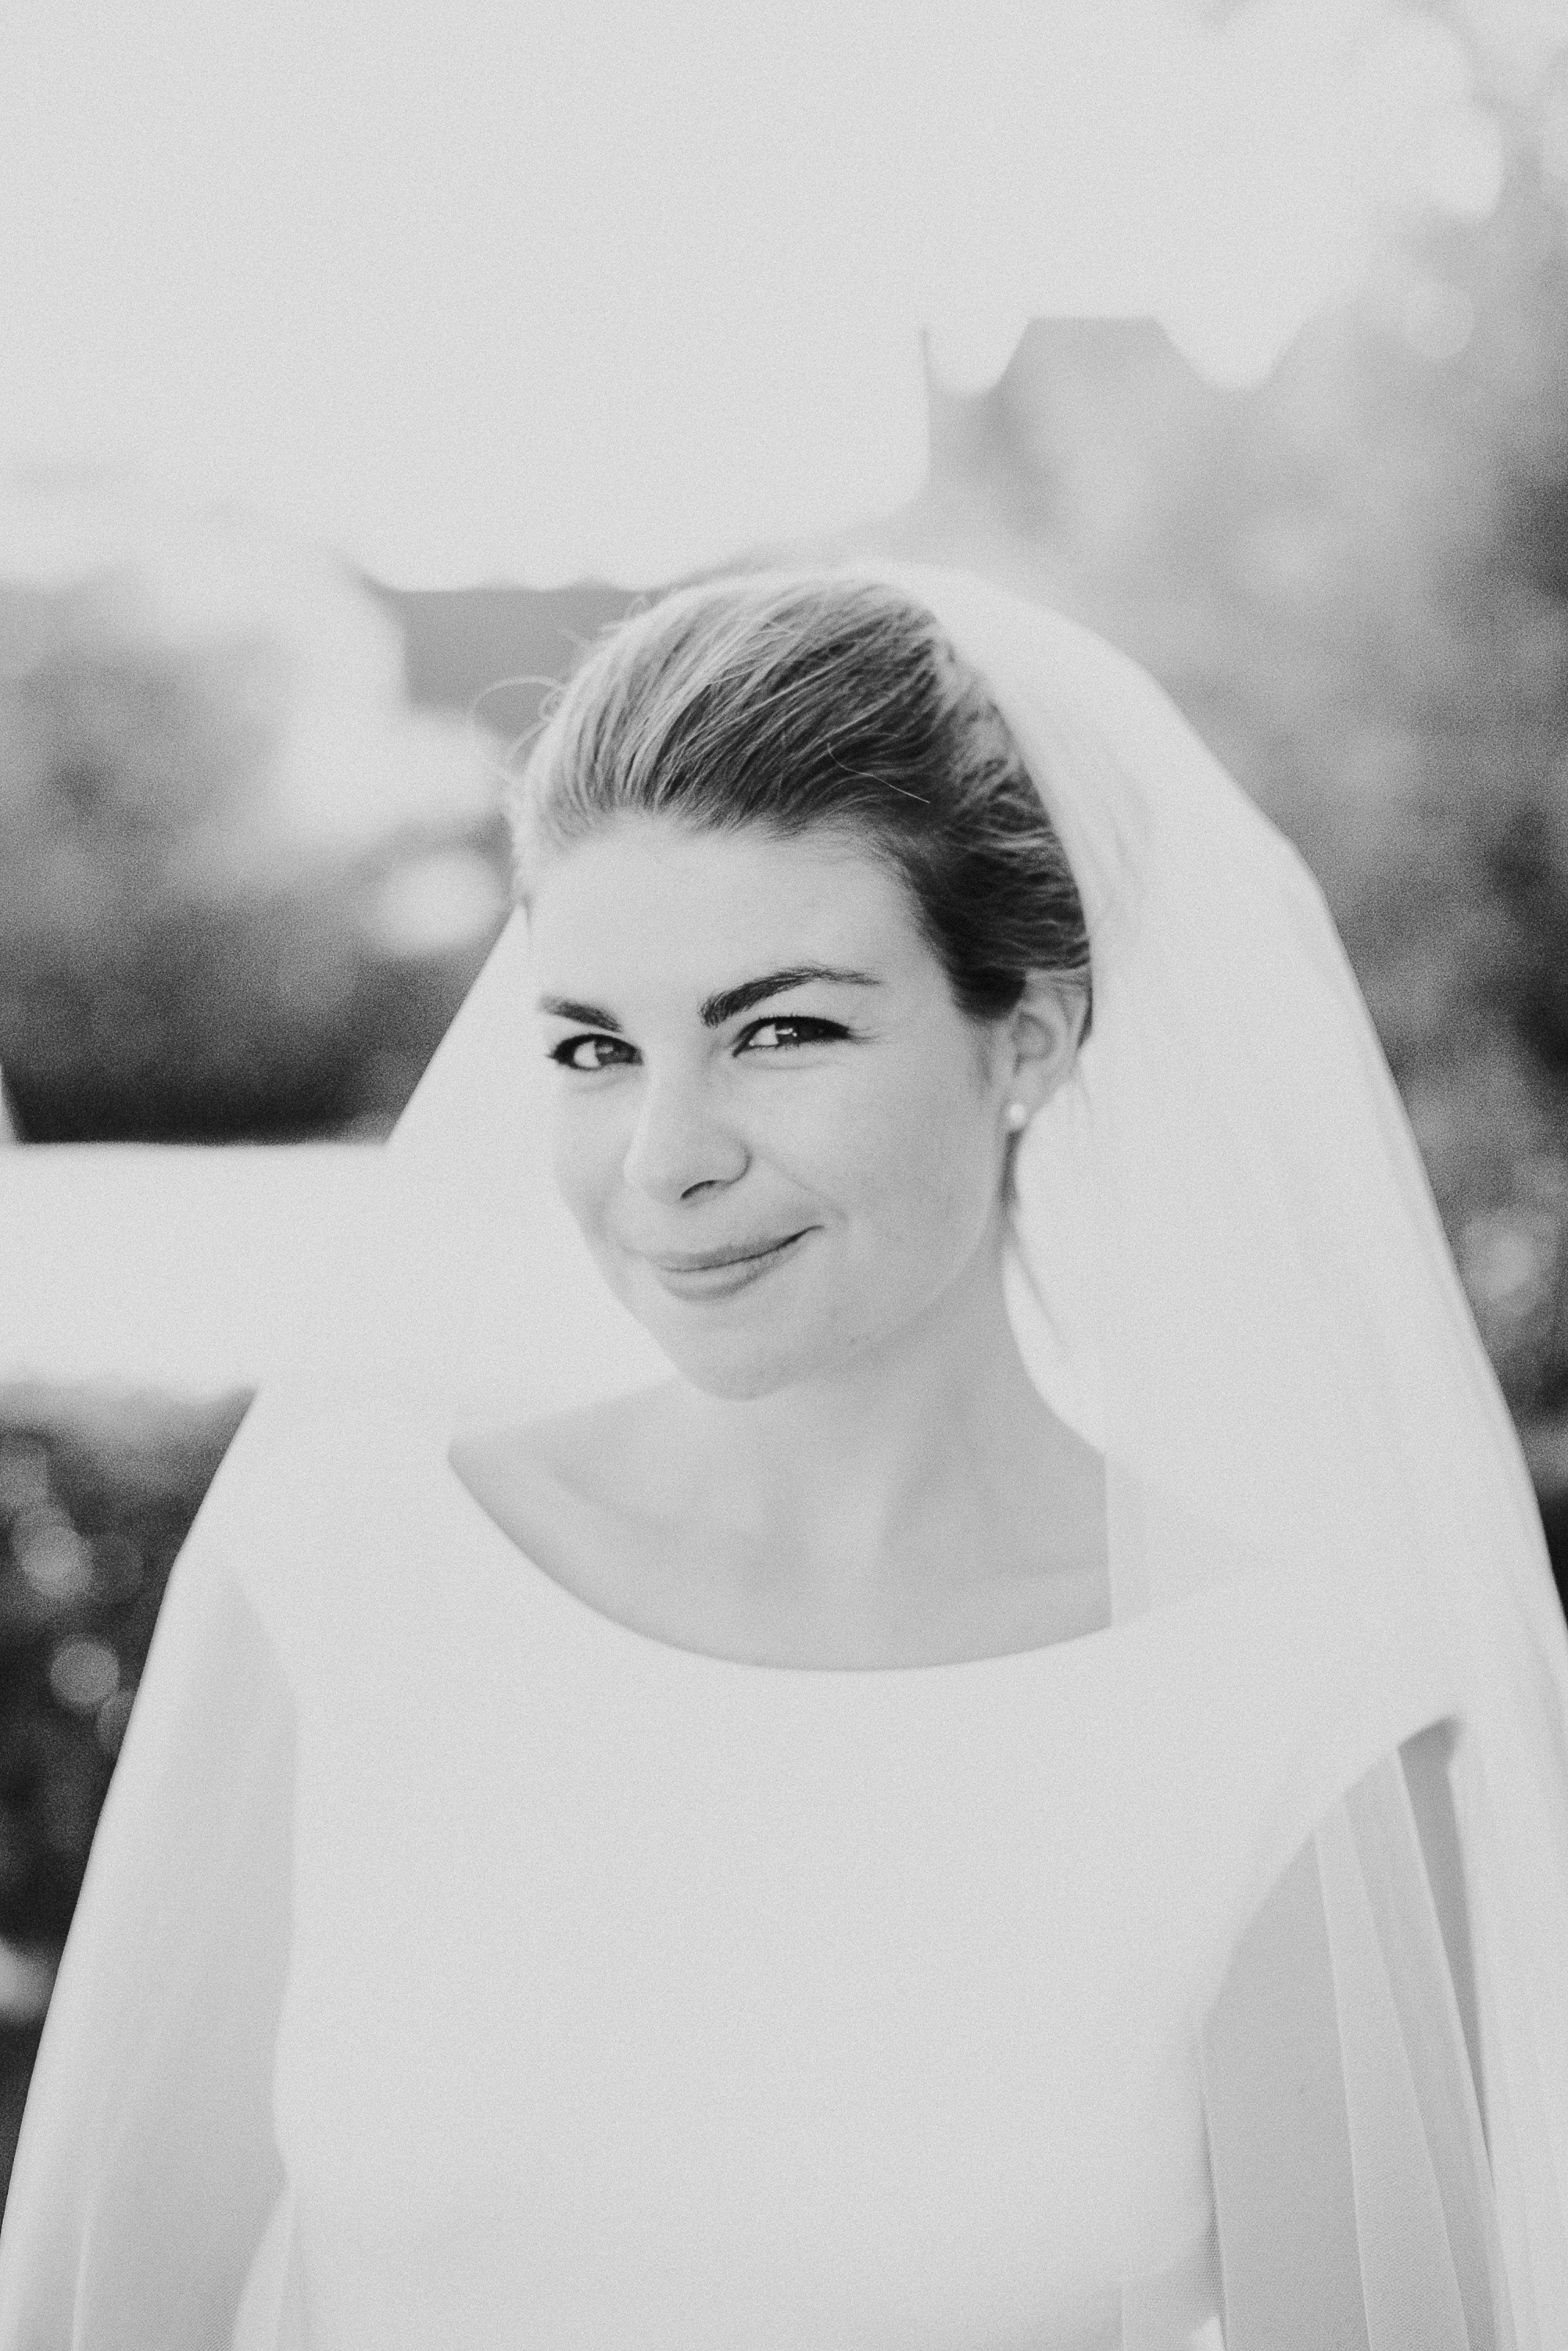 kateryna-photos-mariage-photographe-seigneurie-dalleray-chou-centre_0496.jpg